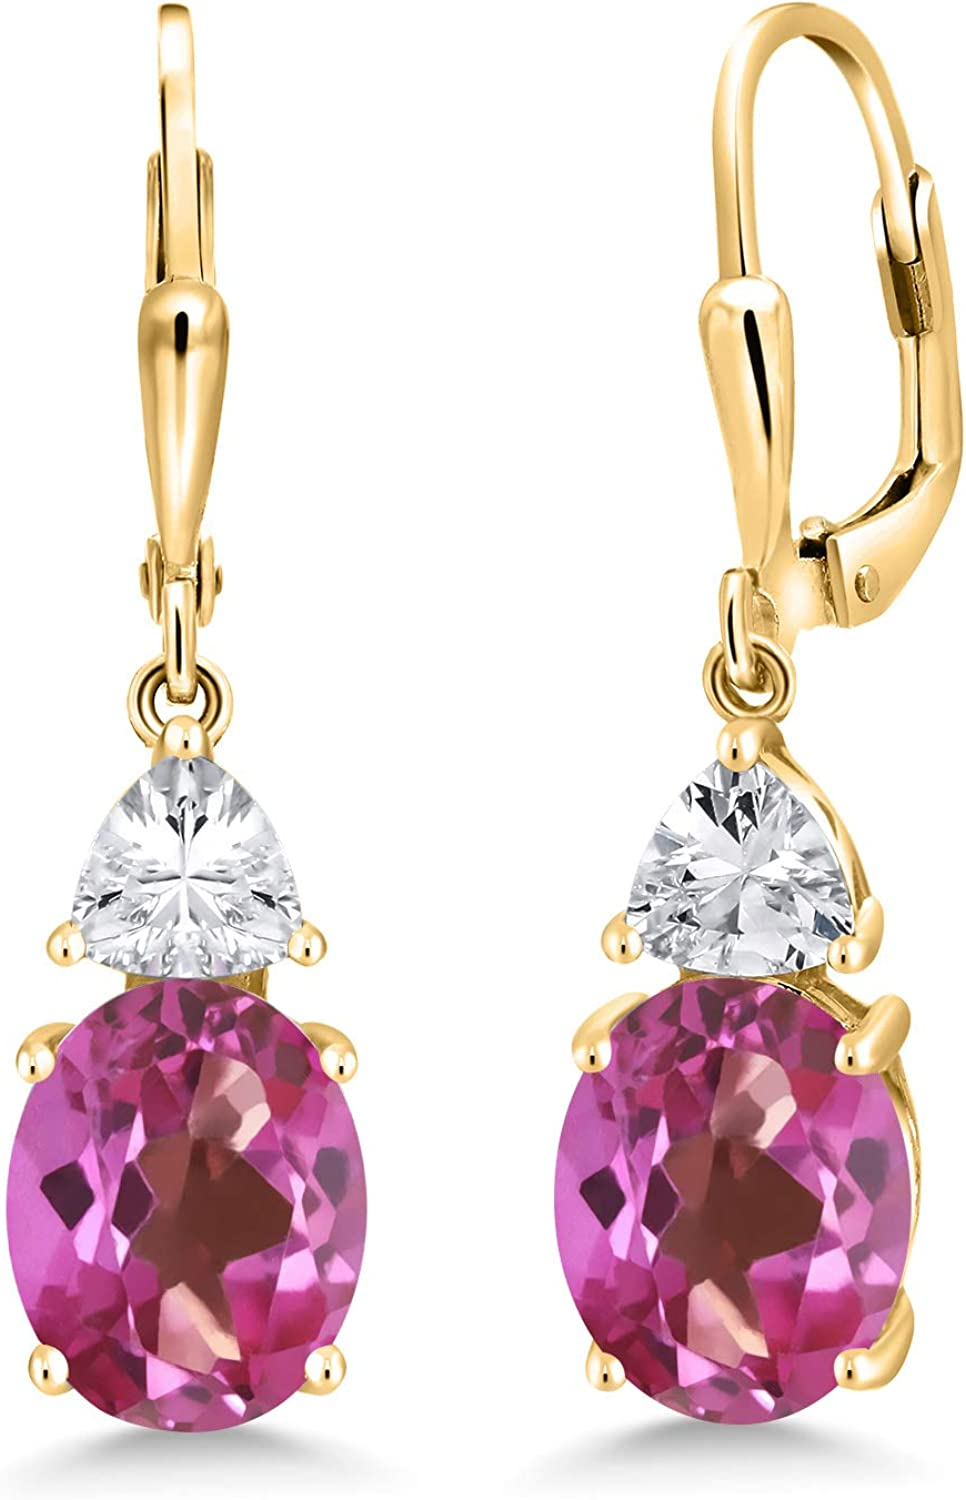 Gem Stone King 8.04 Ct Oval Pink It is very popular Max 49% OFF Mystic Gold Topaz 18K Pl Yellow